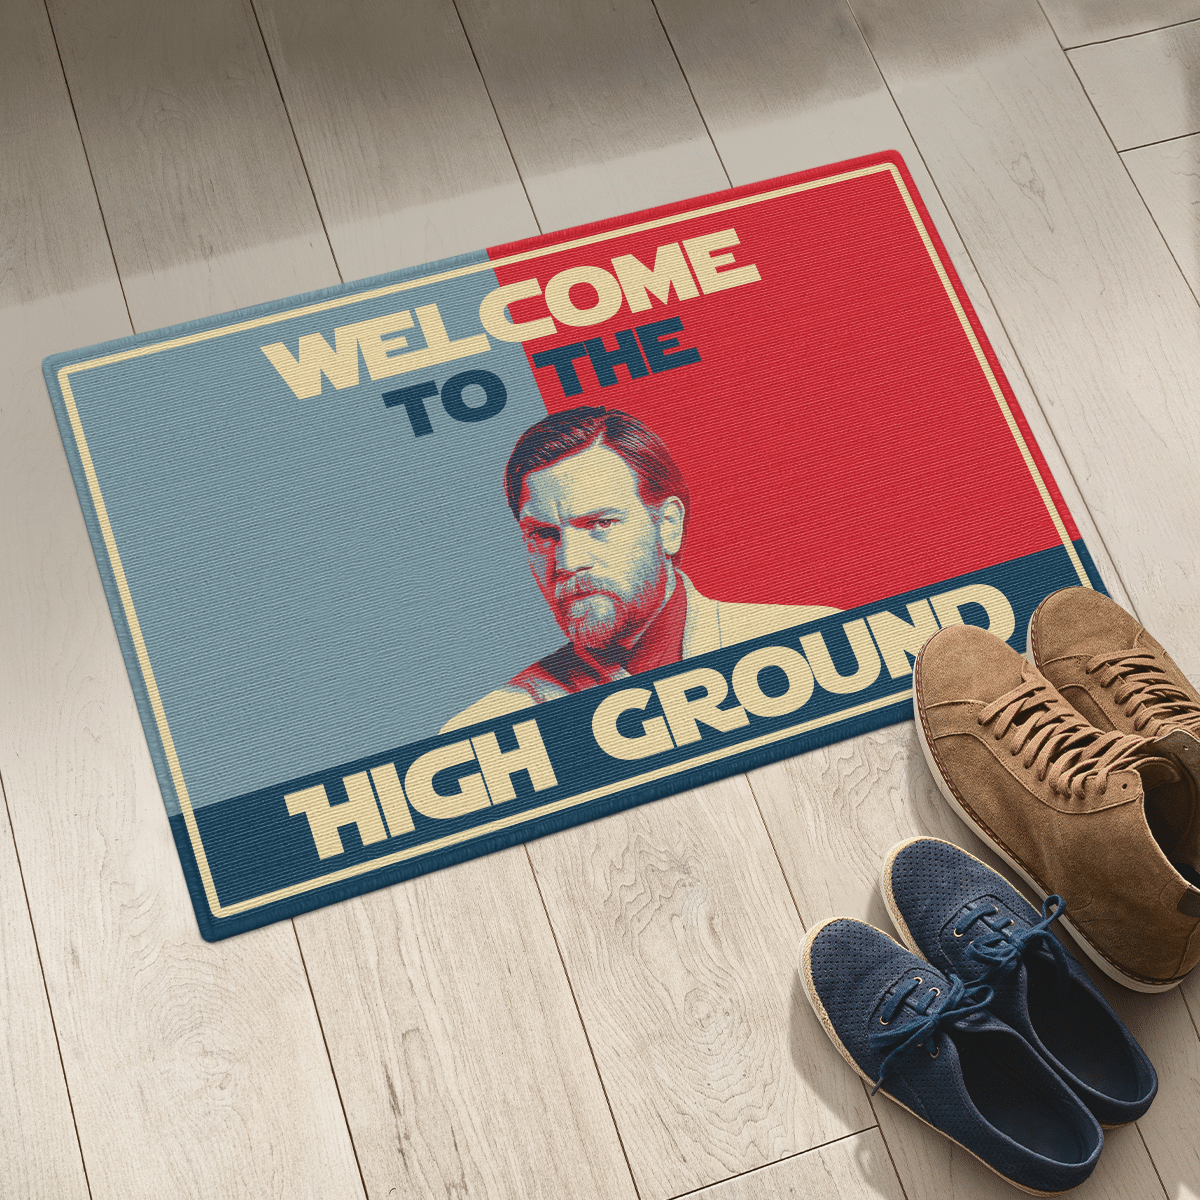 Welcome to the high ground doormat 2